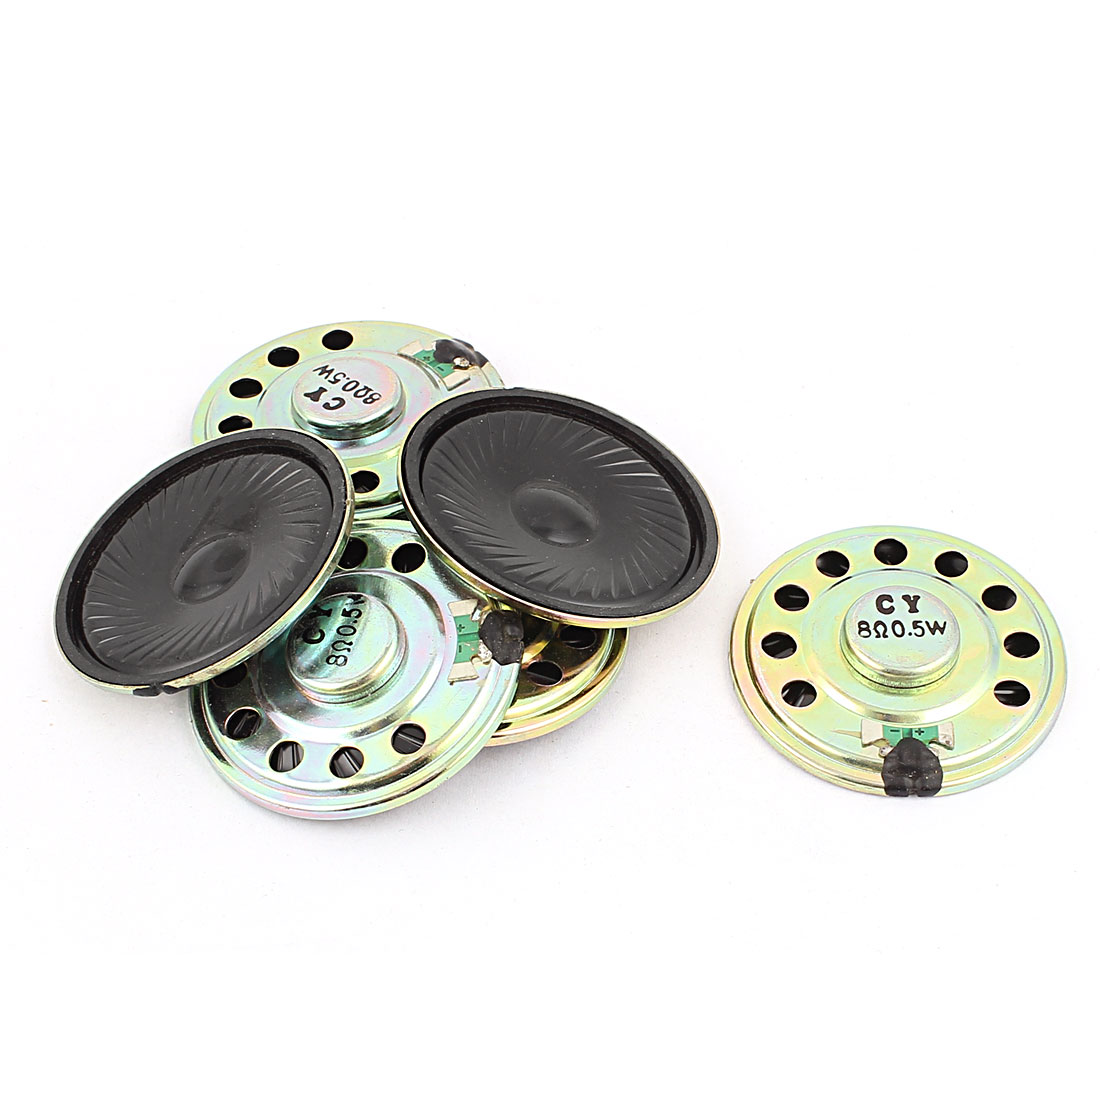 0.5W 50mm Diameter 8 Ohm Internal Mini Magnet Speaker Loudspeaker 6Pcs